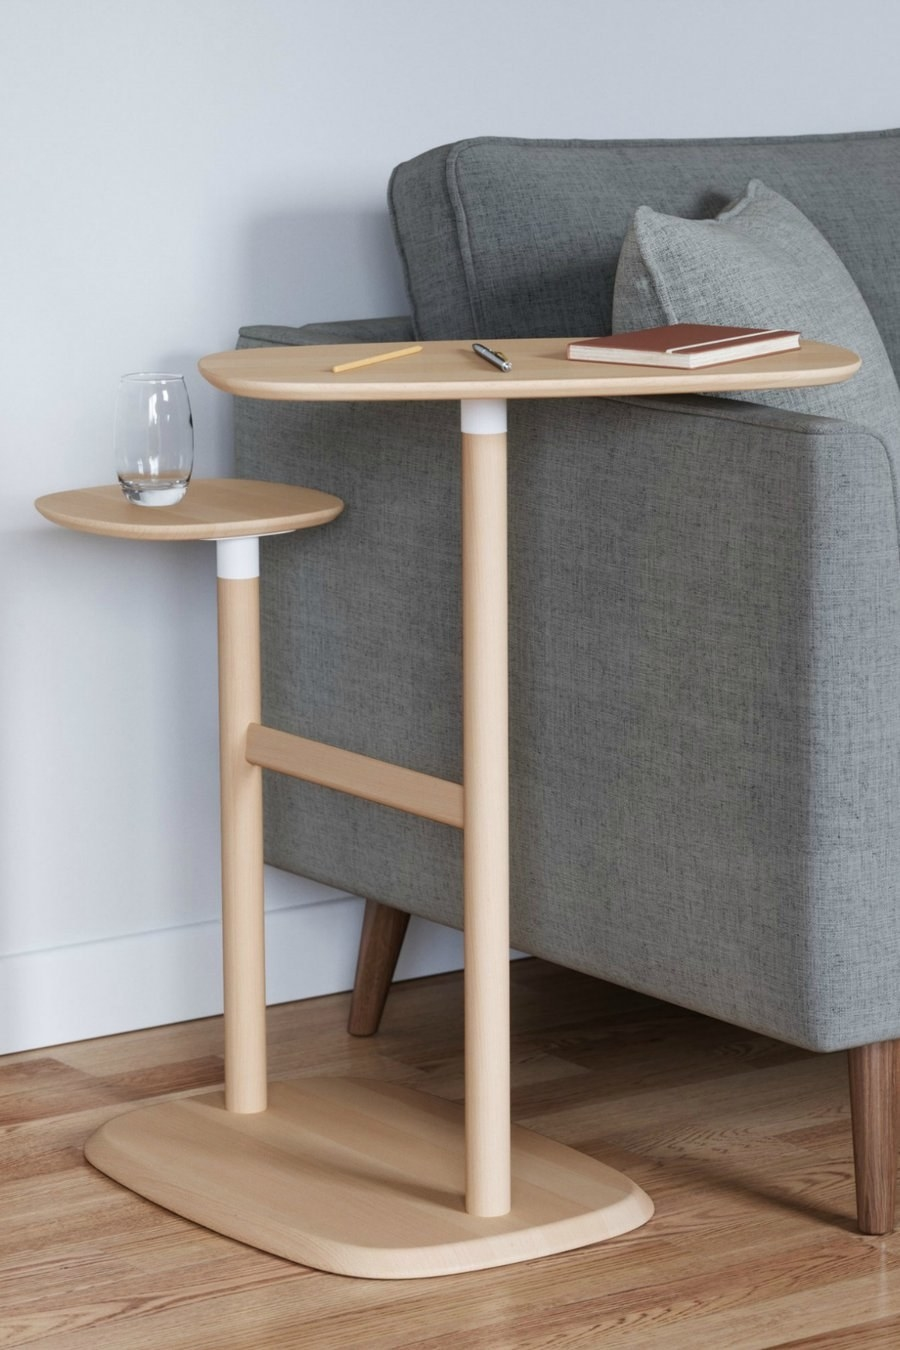 A two-tier light wood side table with a glass of water on the smaller table and the taller, bigger table  turned over the side of a couch